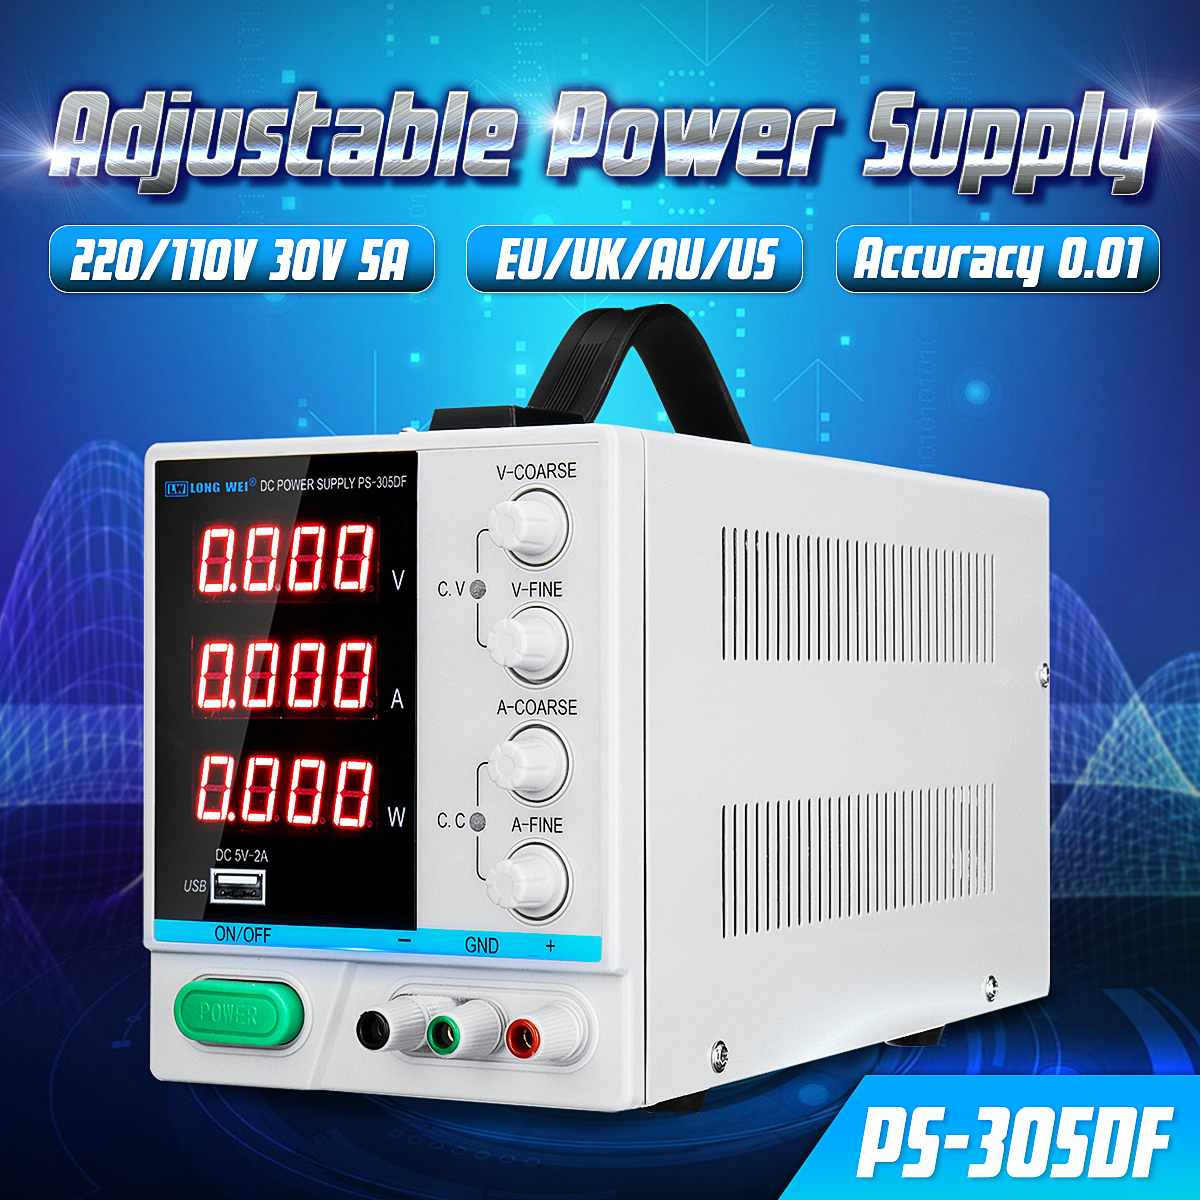 PS 305DF 0.01 Accuracy 110V/220V 30V 5A Adjustable DC Power Supply Switching Regulated Power Supply W/ 5V 2A USB